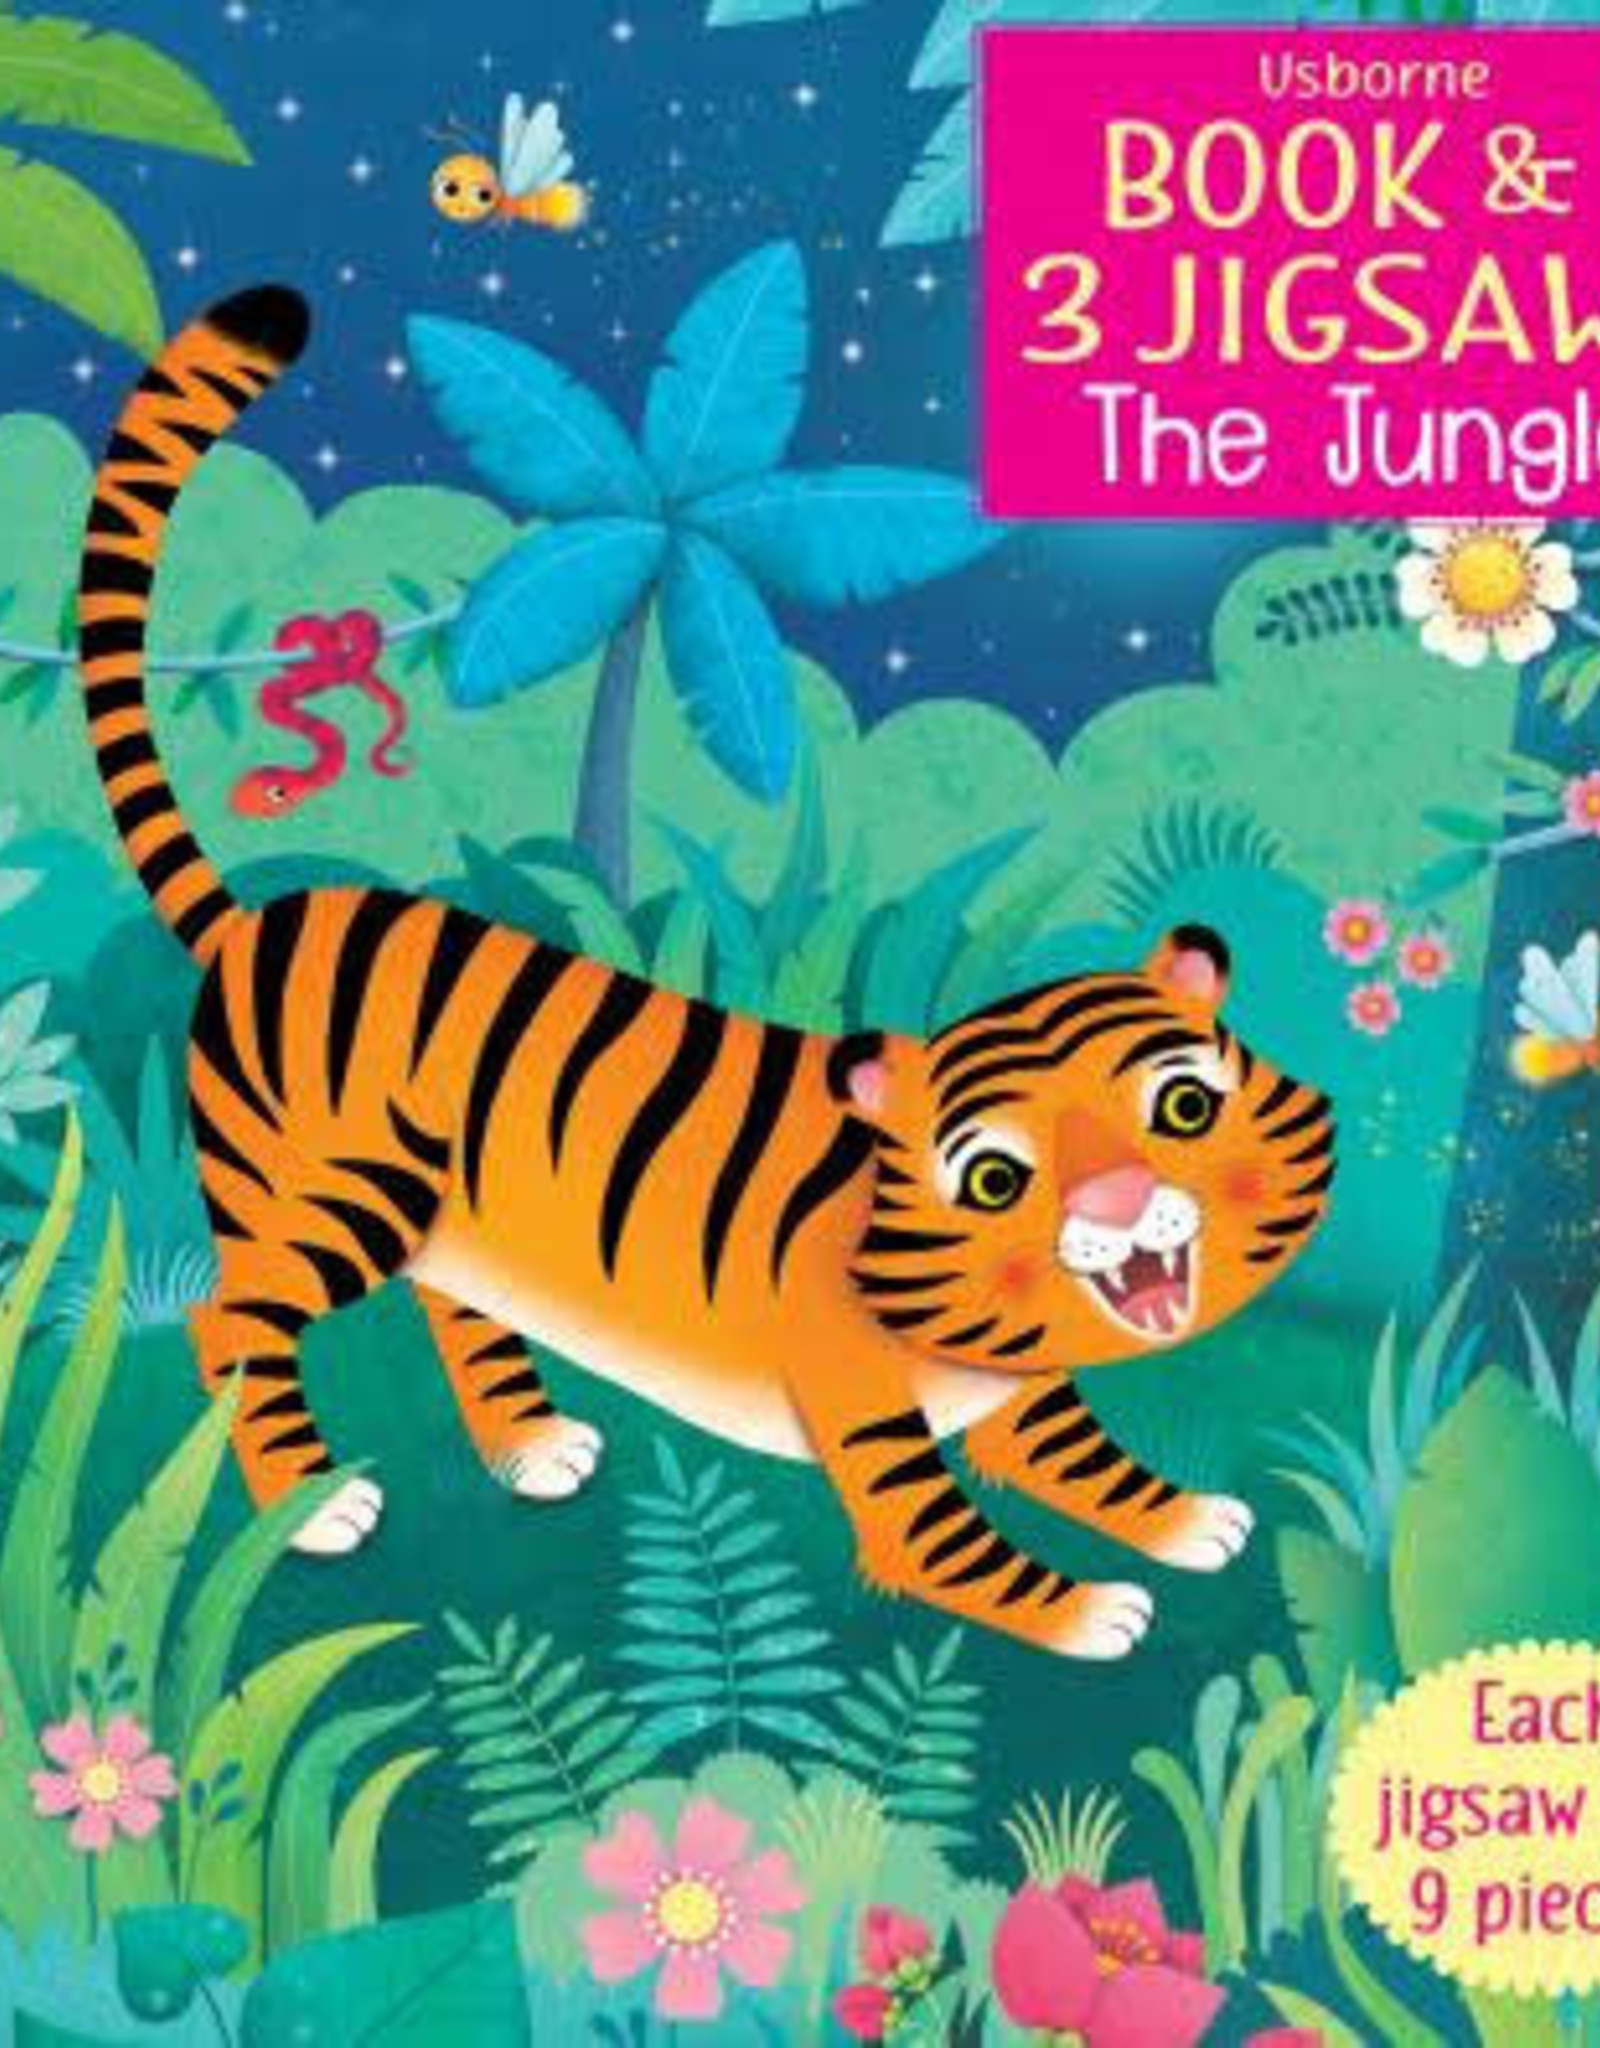 Usborne Usborne Book & 3 Jigsaws - The Jungle